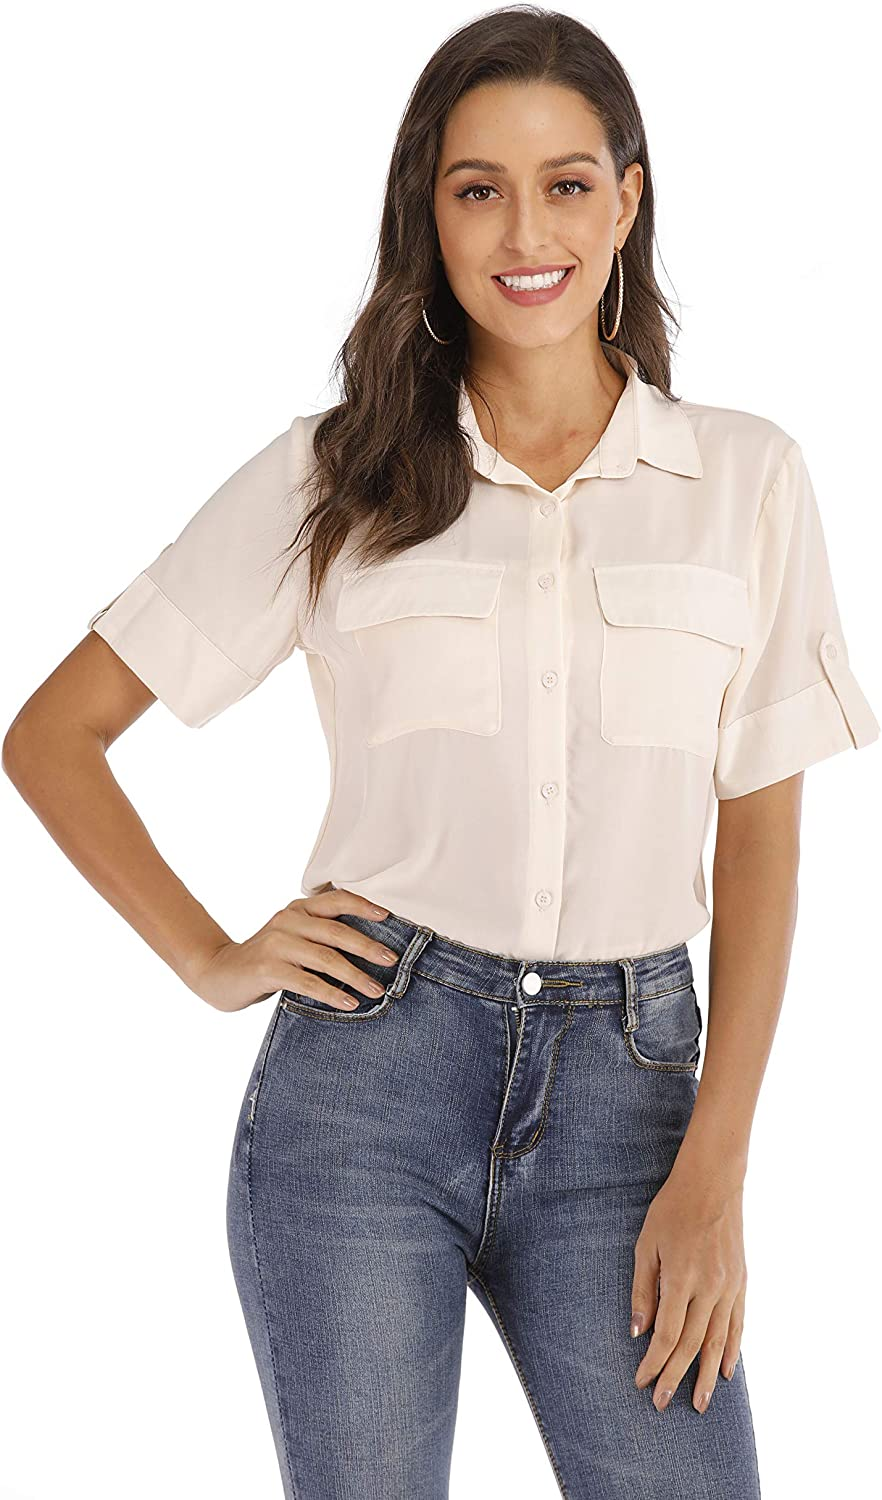 SUNNOW Women's Short Sleeve Office Work Chiffon Blouses Button Down Casual Shirts (L, Apricot) …